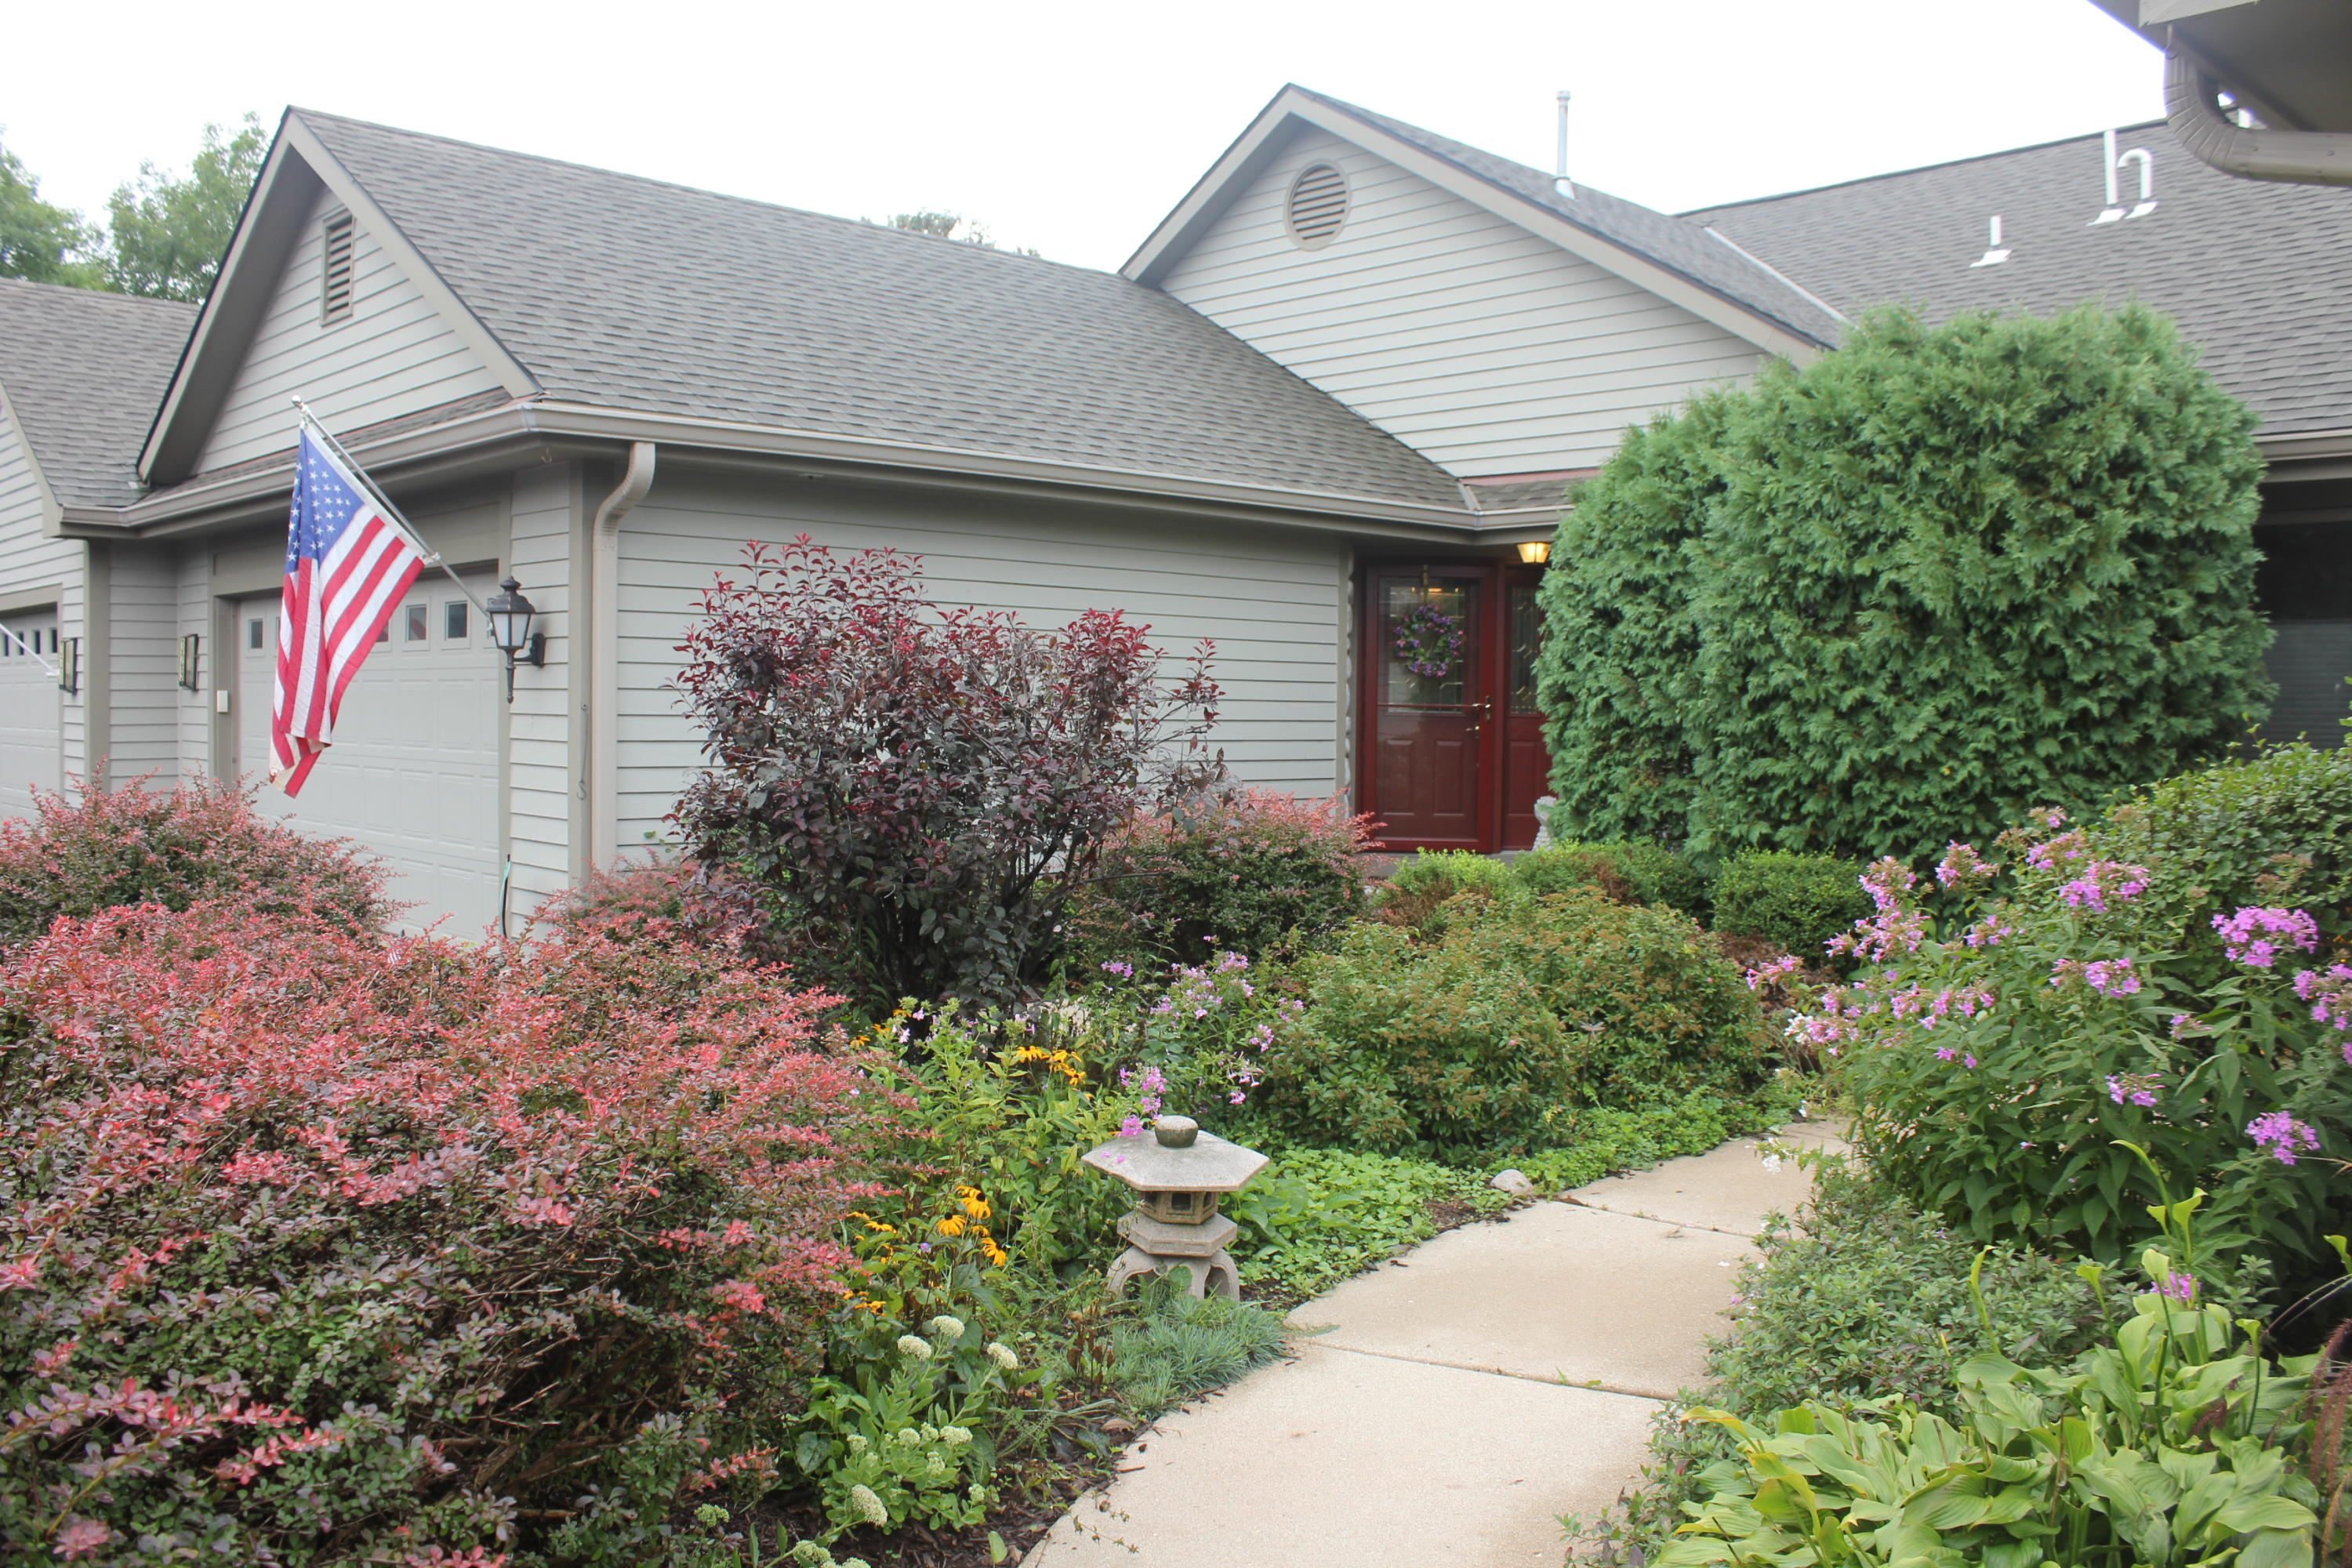 329 Parkview Ct, Hartland, Wisconsin 53029, 2 Bedrooms Bedrooms, 8 Rooms Rooms,2 BathroomsBathrooms,Condominiums,For Sale,Parkview Ct,1,1603260